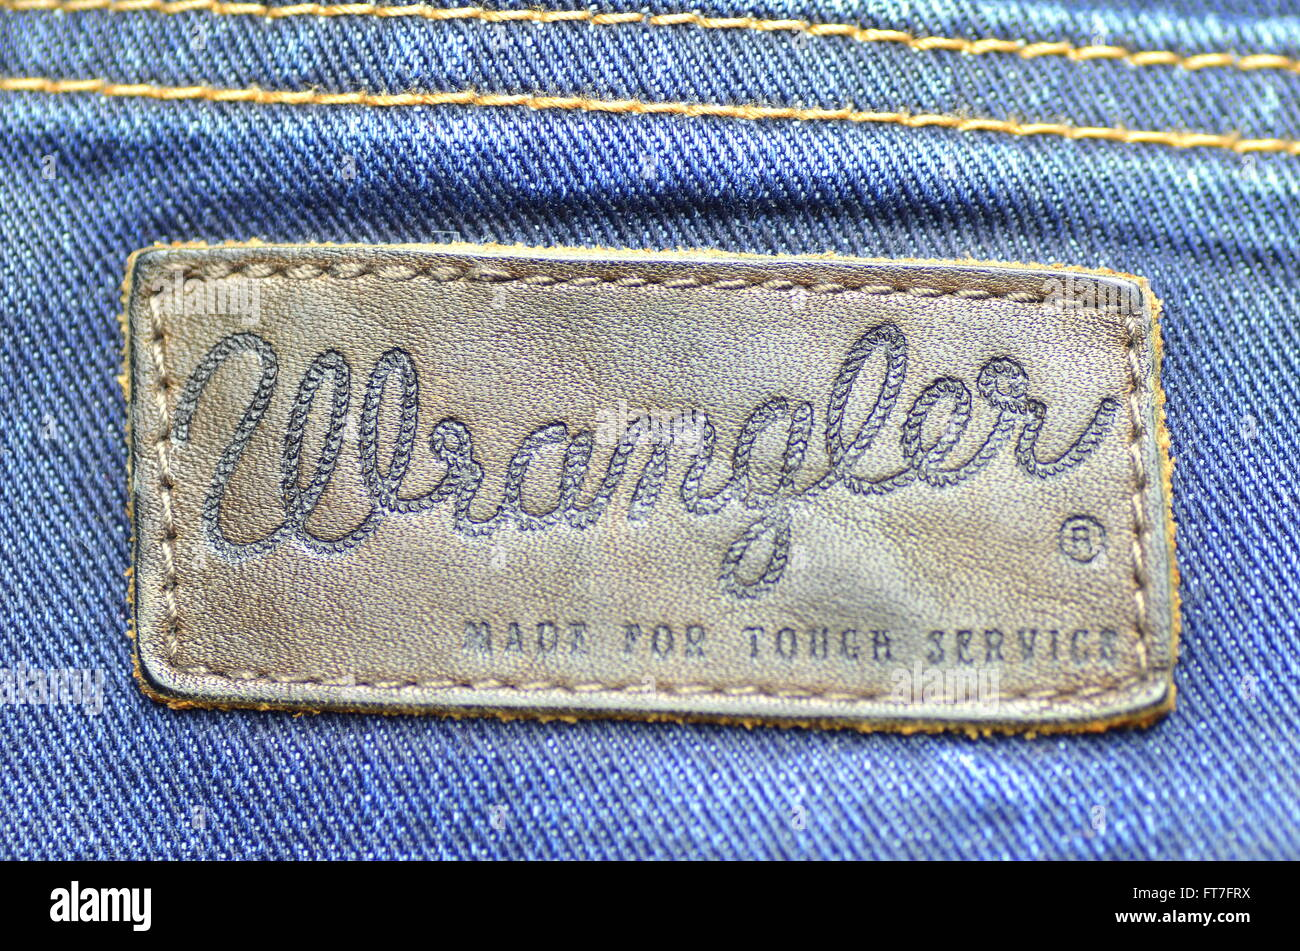 1544cc27 Closeup of Wrangler label on blue jeans Stock Photo: 100969678 - Alamy